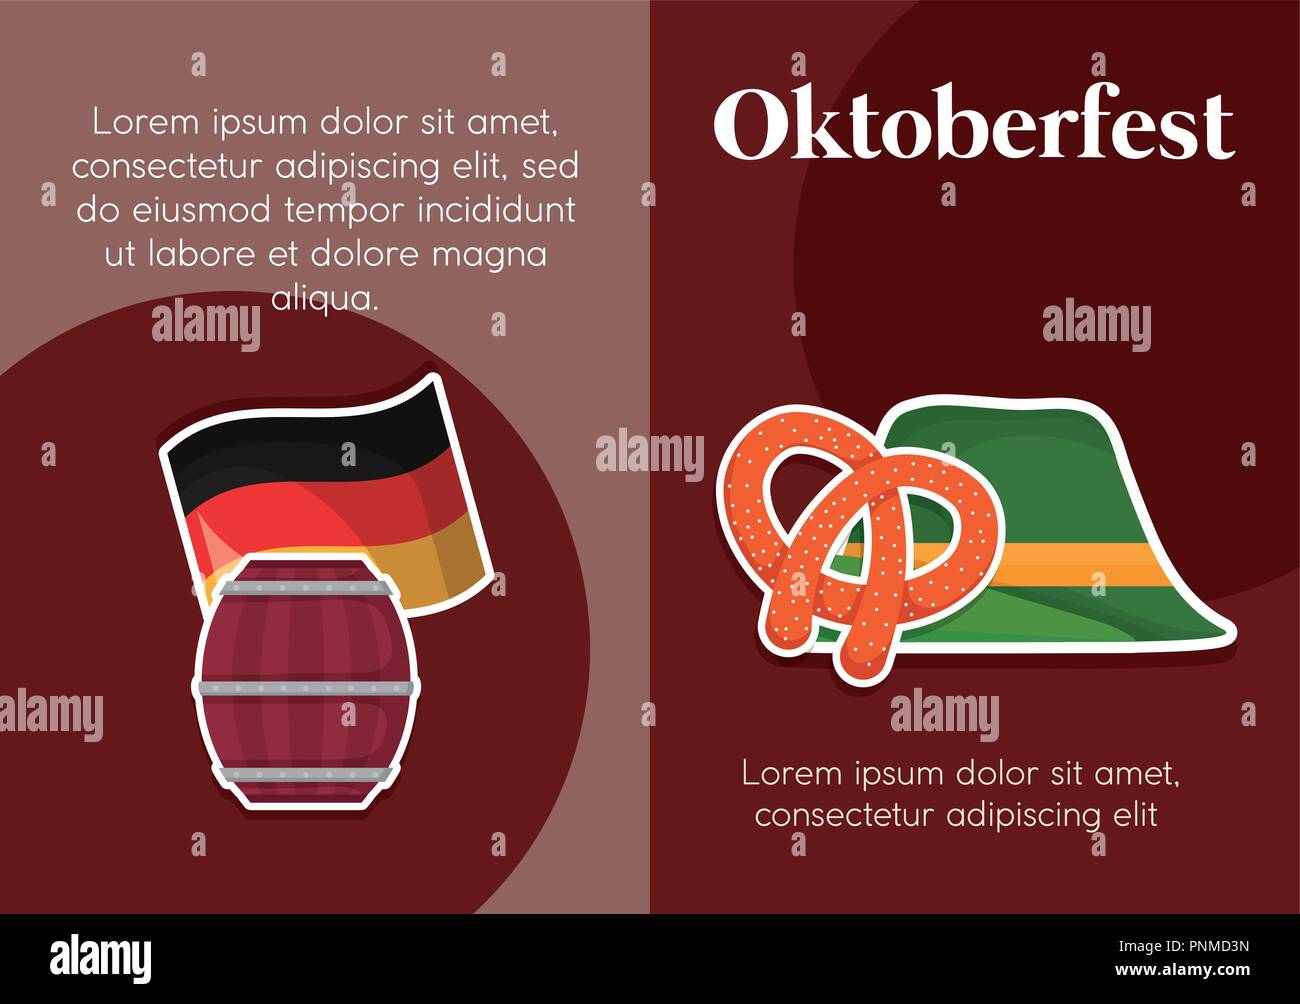 oktoberfest label with set icons vector illustration design - Stock Image